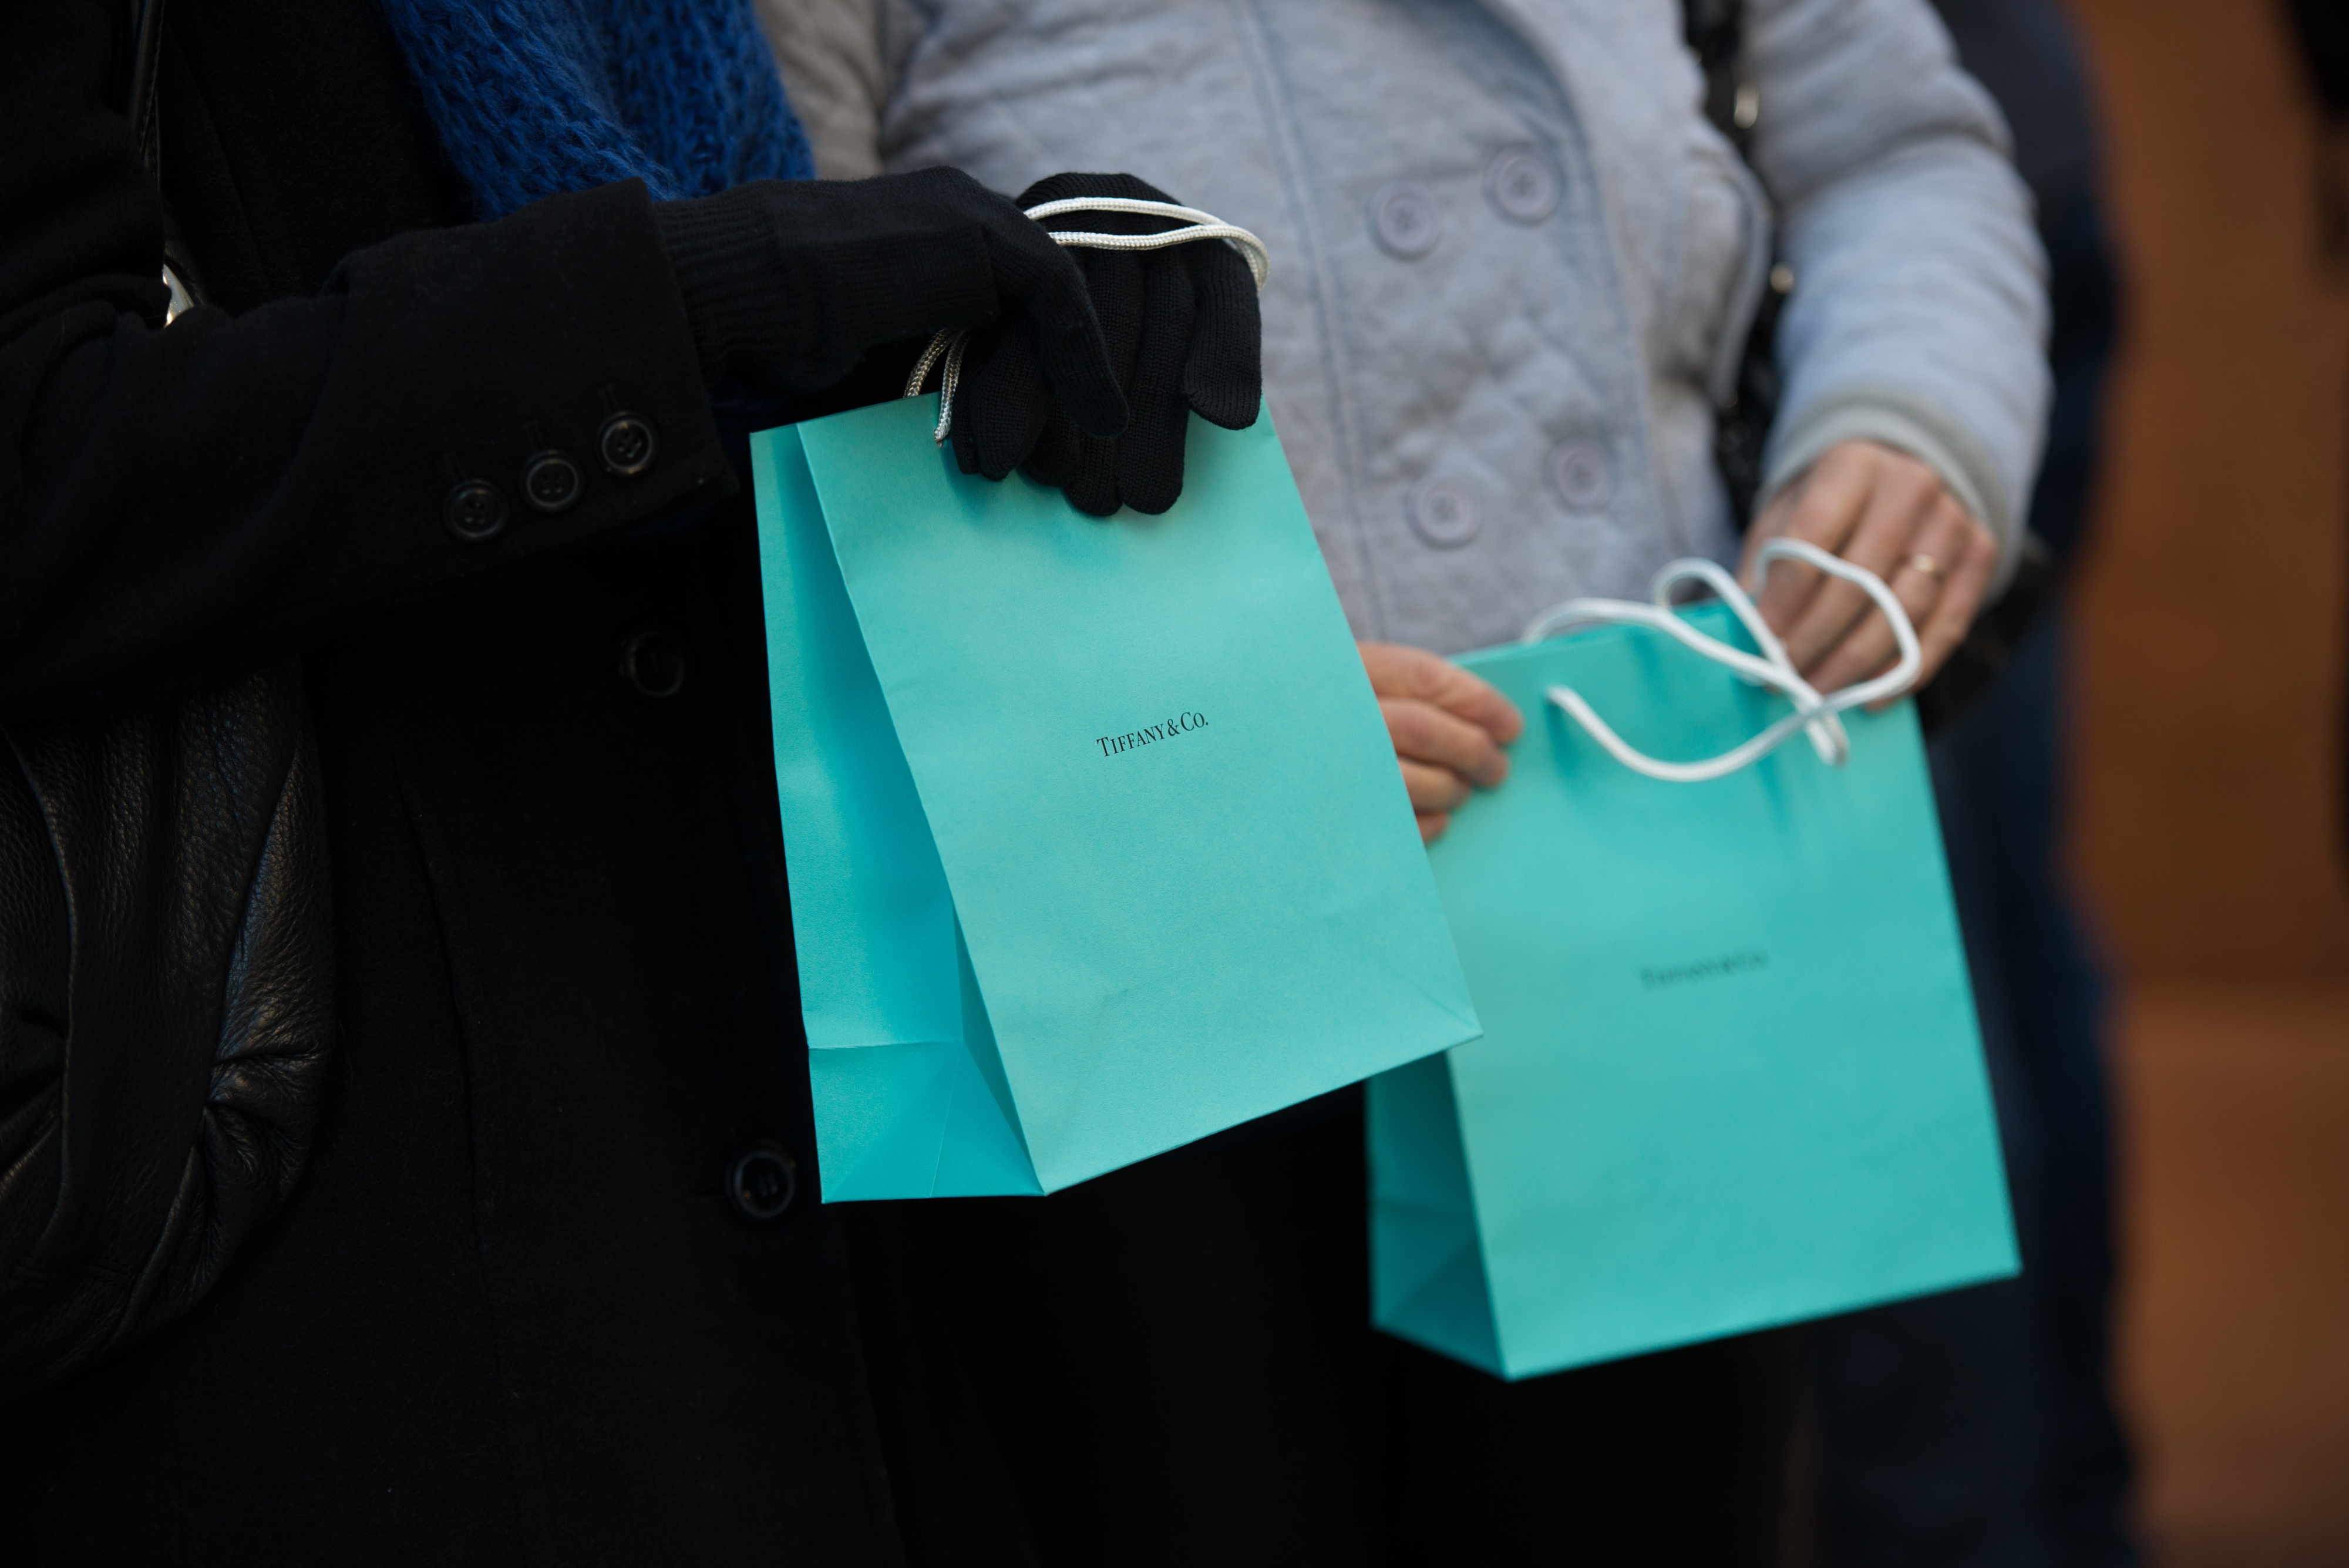 Customers carry Tiffany & Co. shopping bags outside the company's flagship store in New York.